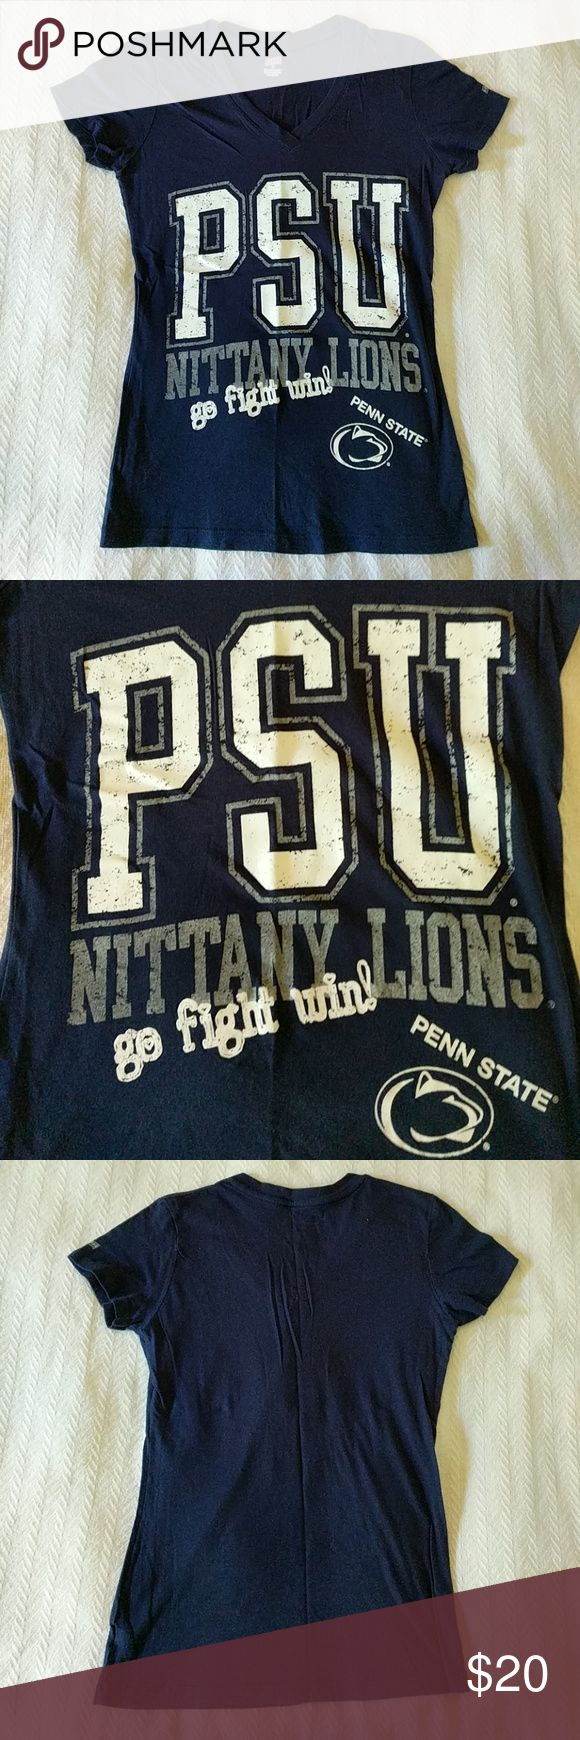 "Penn State PSU Nittany Lions V-Neck T-Shirt Penn State PSU Nittany Lions V-Neck T-shirt.    Flat lay measurements approximately: 25"" long, 16"" bust, 15"" natural waist, 16"" hips.  Excellent condition. No rips, stains, or imperfections. Smoke free house. Soffe Tops Tees - Short Sleeve"